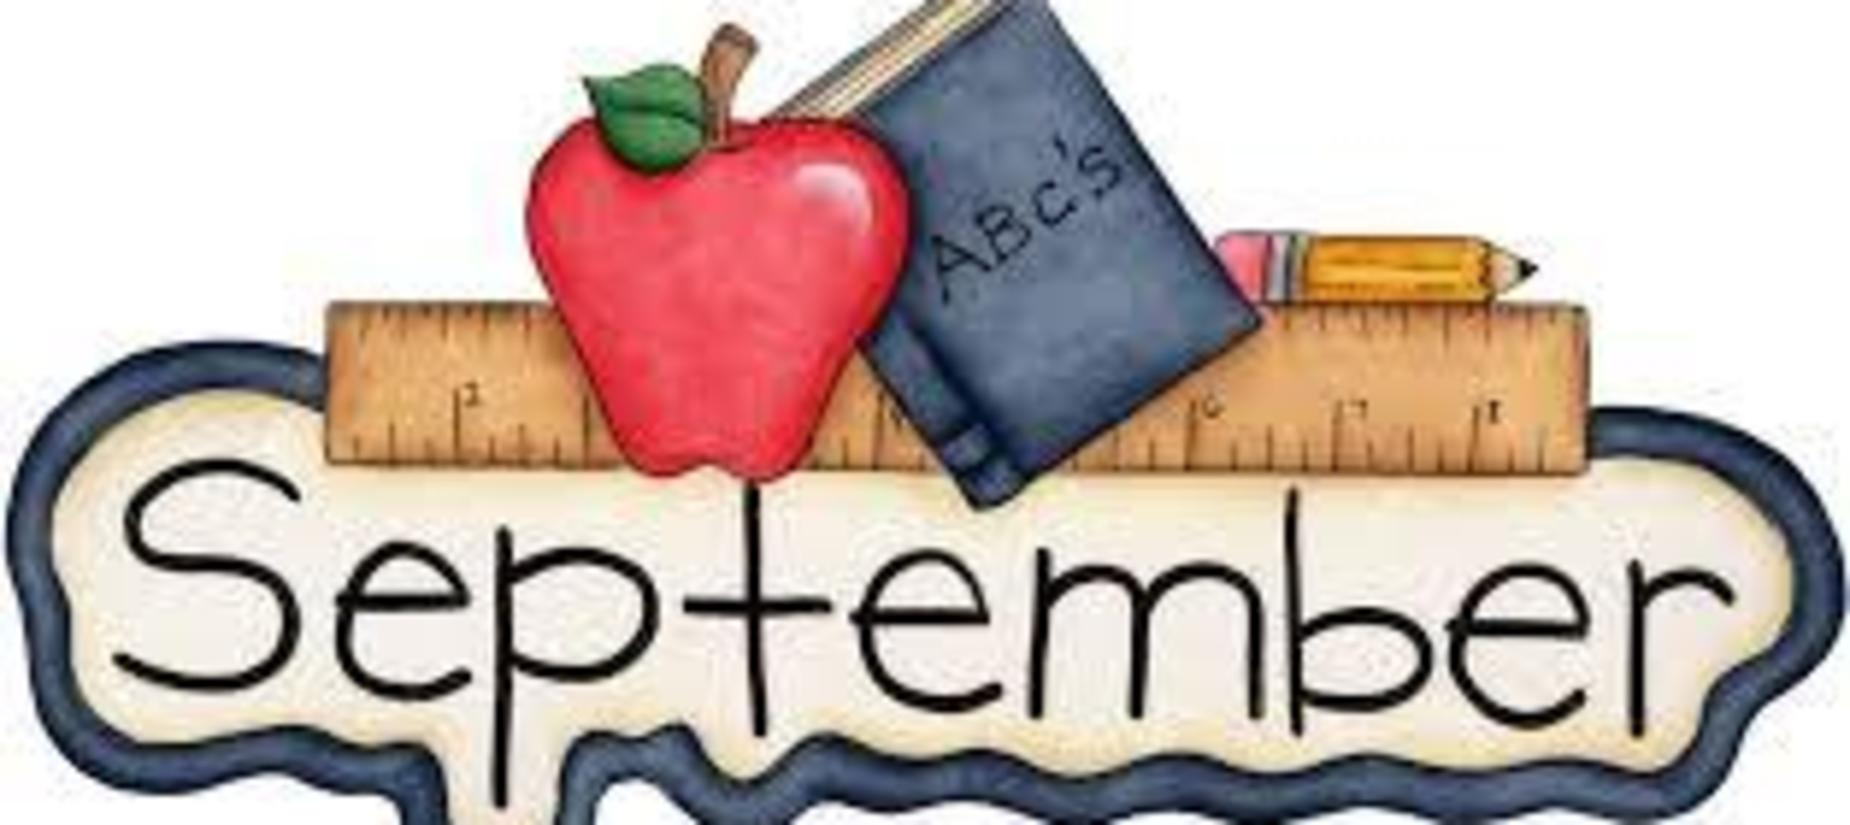 ruler, pencil, book and apple with the words September written out